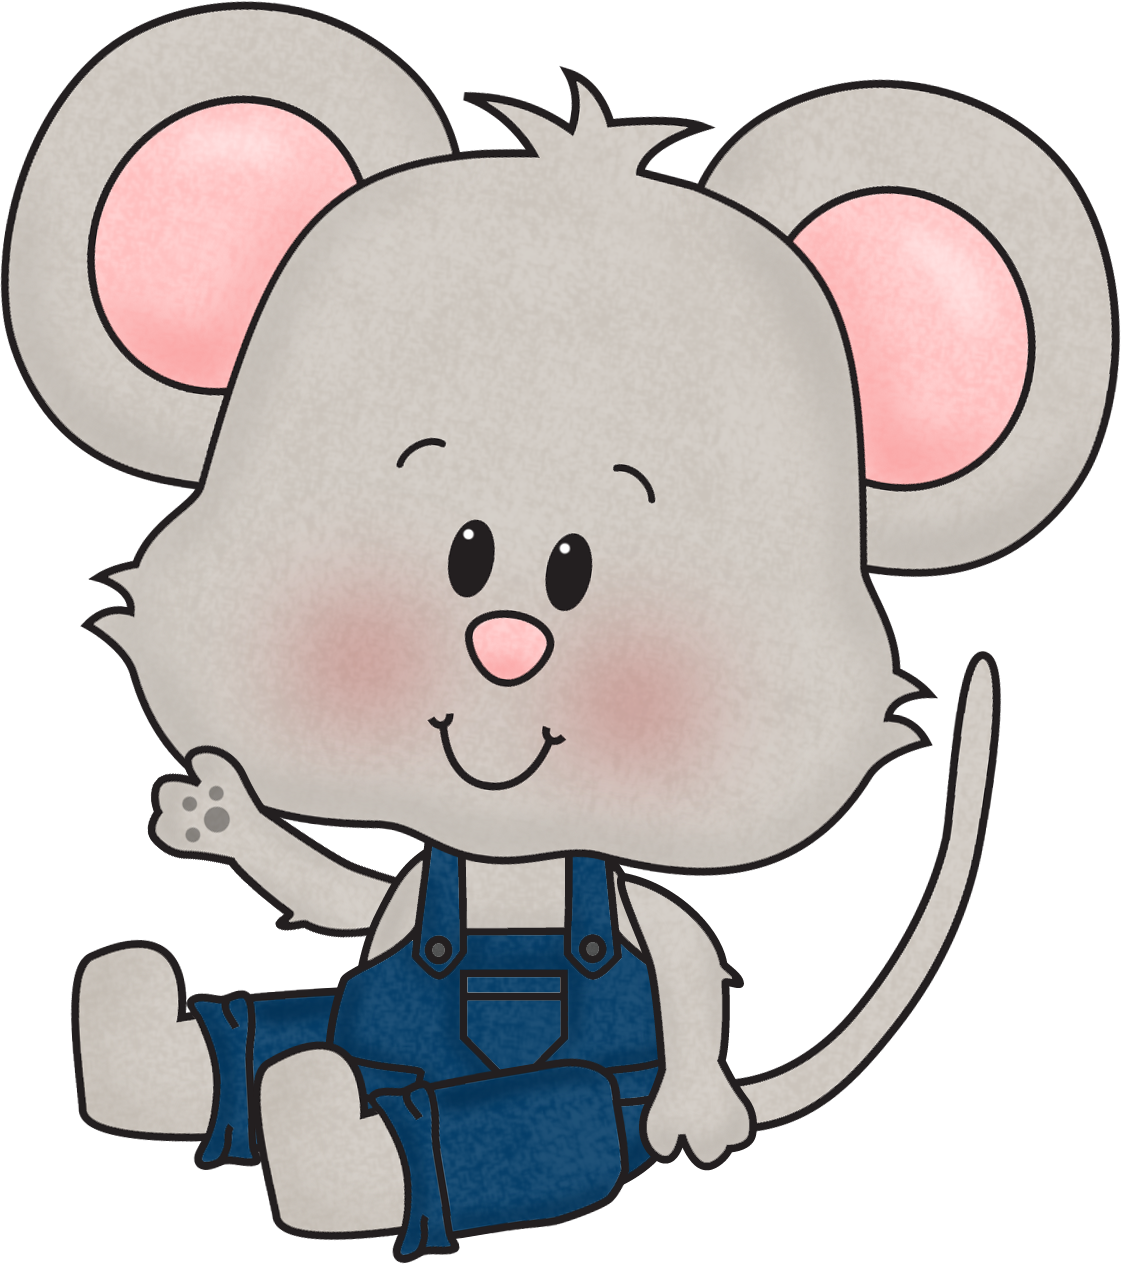 1000  images about Raton Clipart, Mouse Clipart on Pinterest   The cheese, Design and Clip art